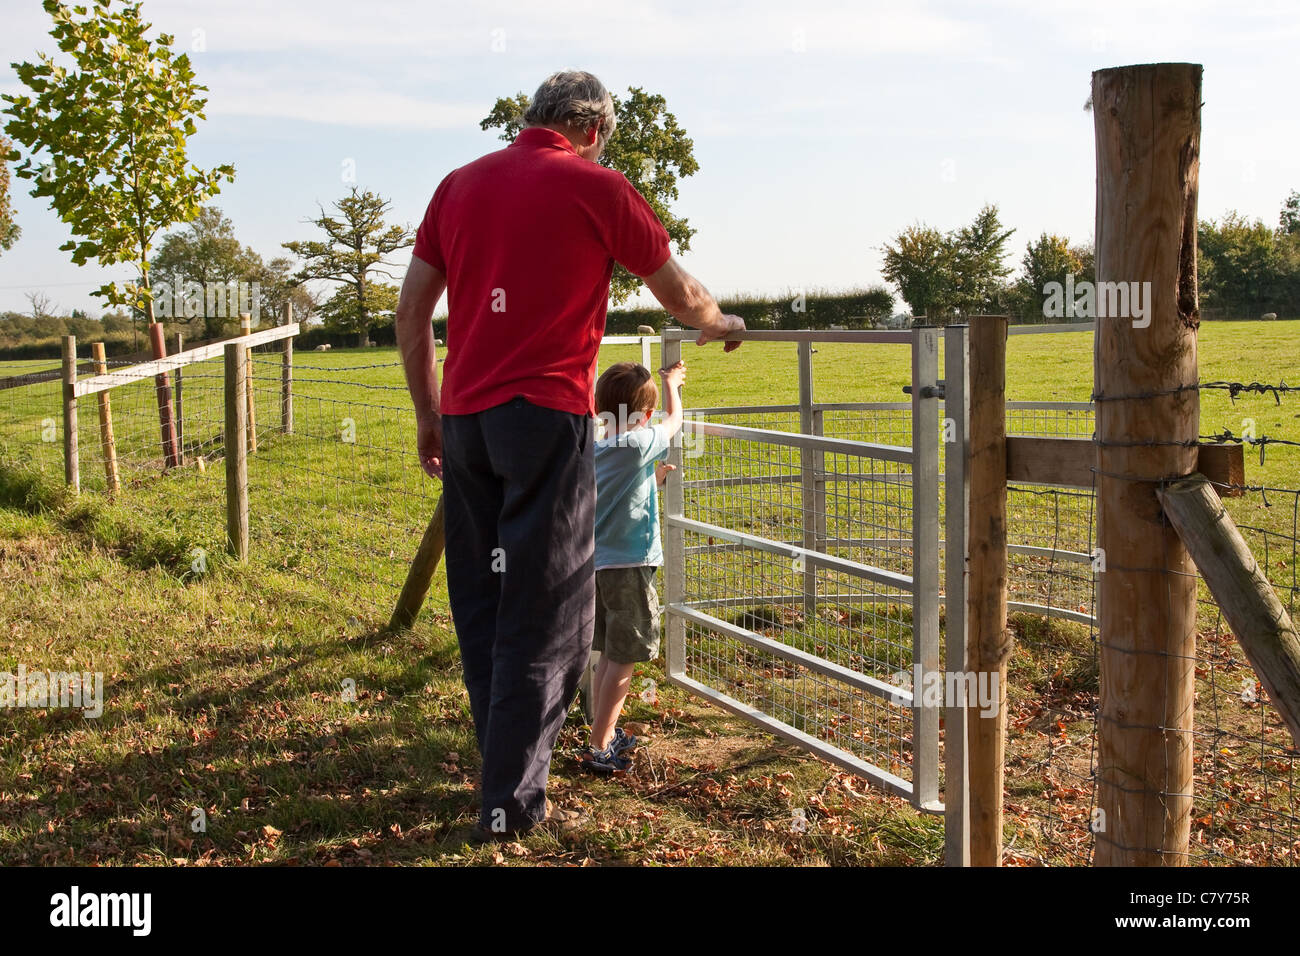 Grandad and his young grandson enjoy a walk in the country in the early October UK heat wave, 2011. - Stock Image